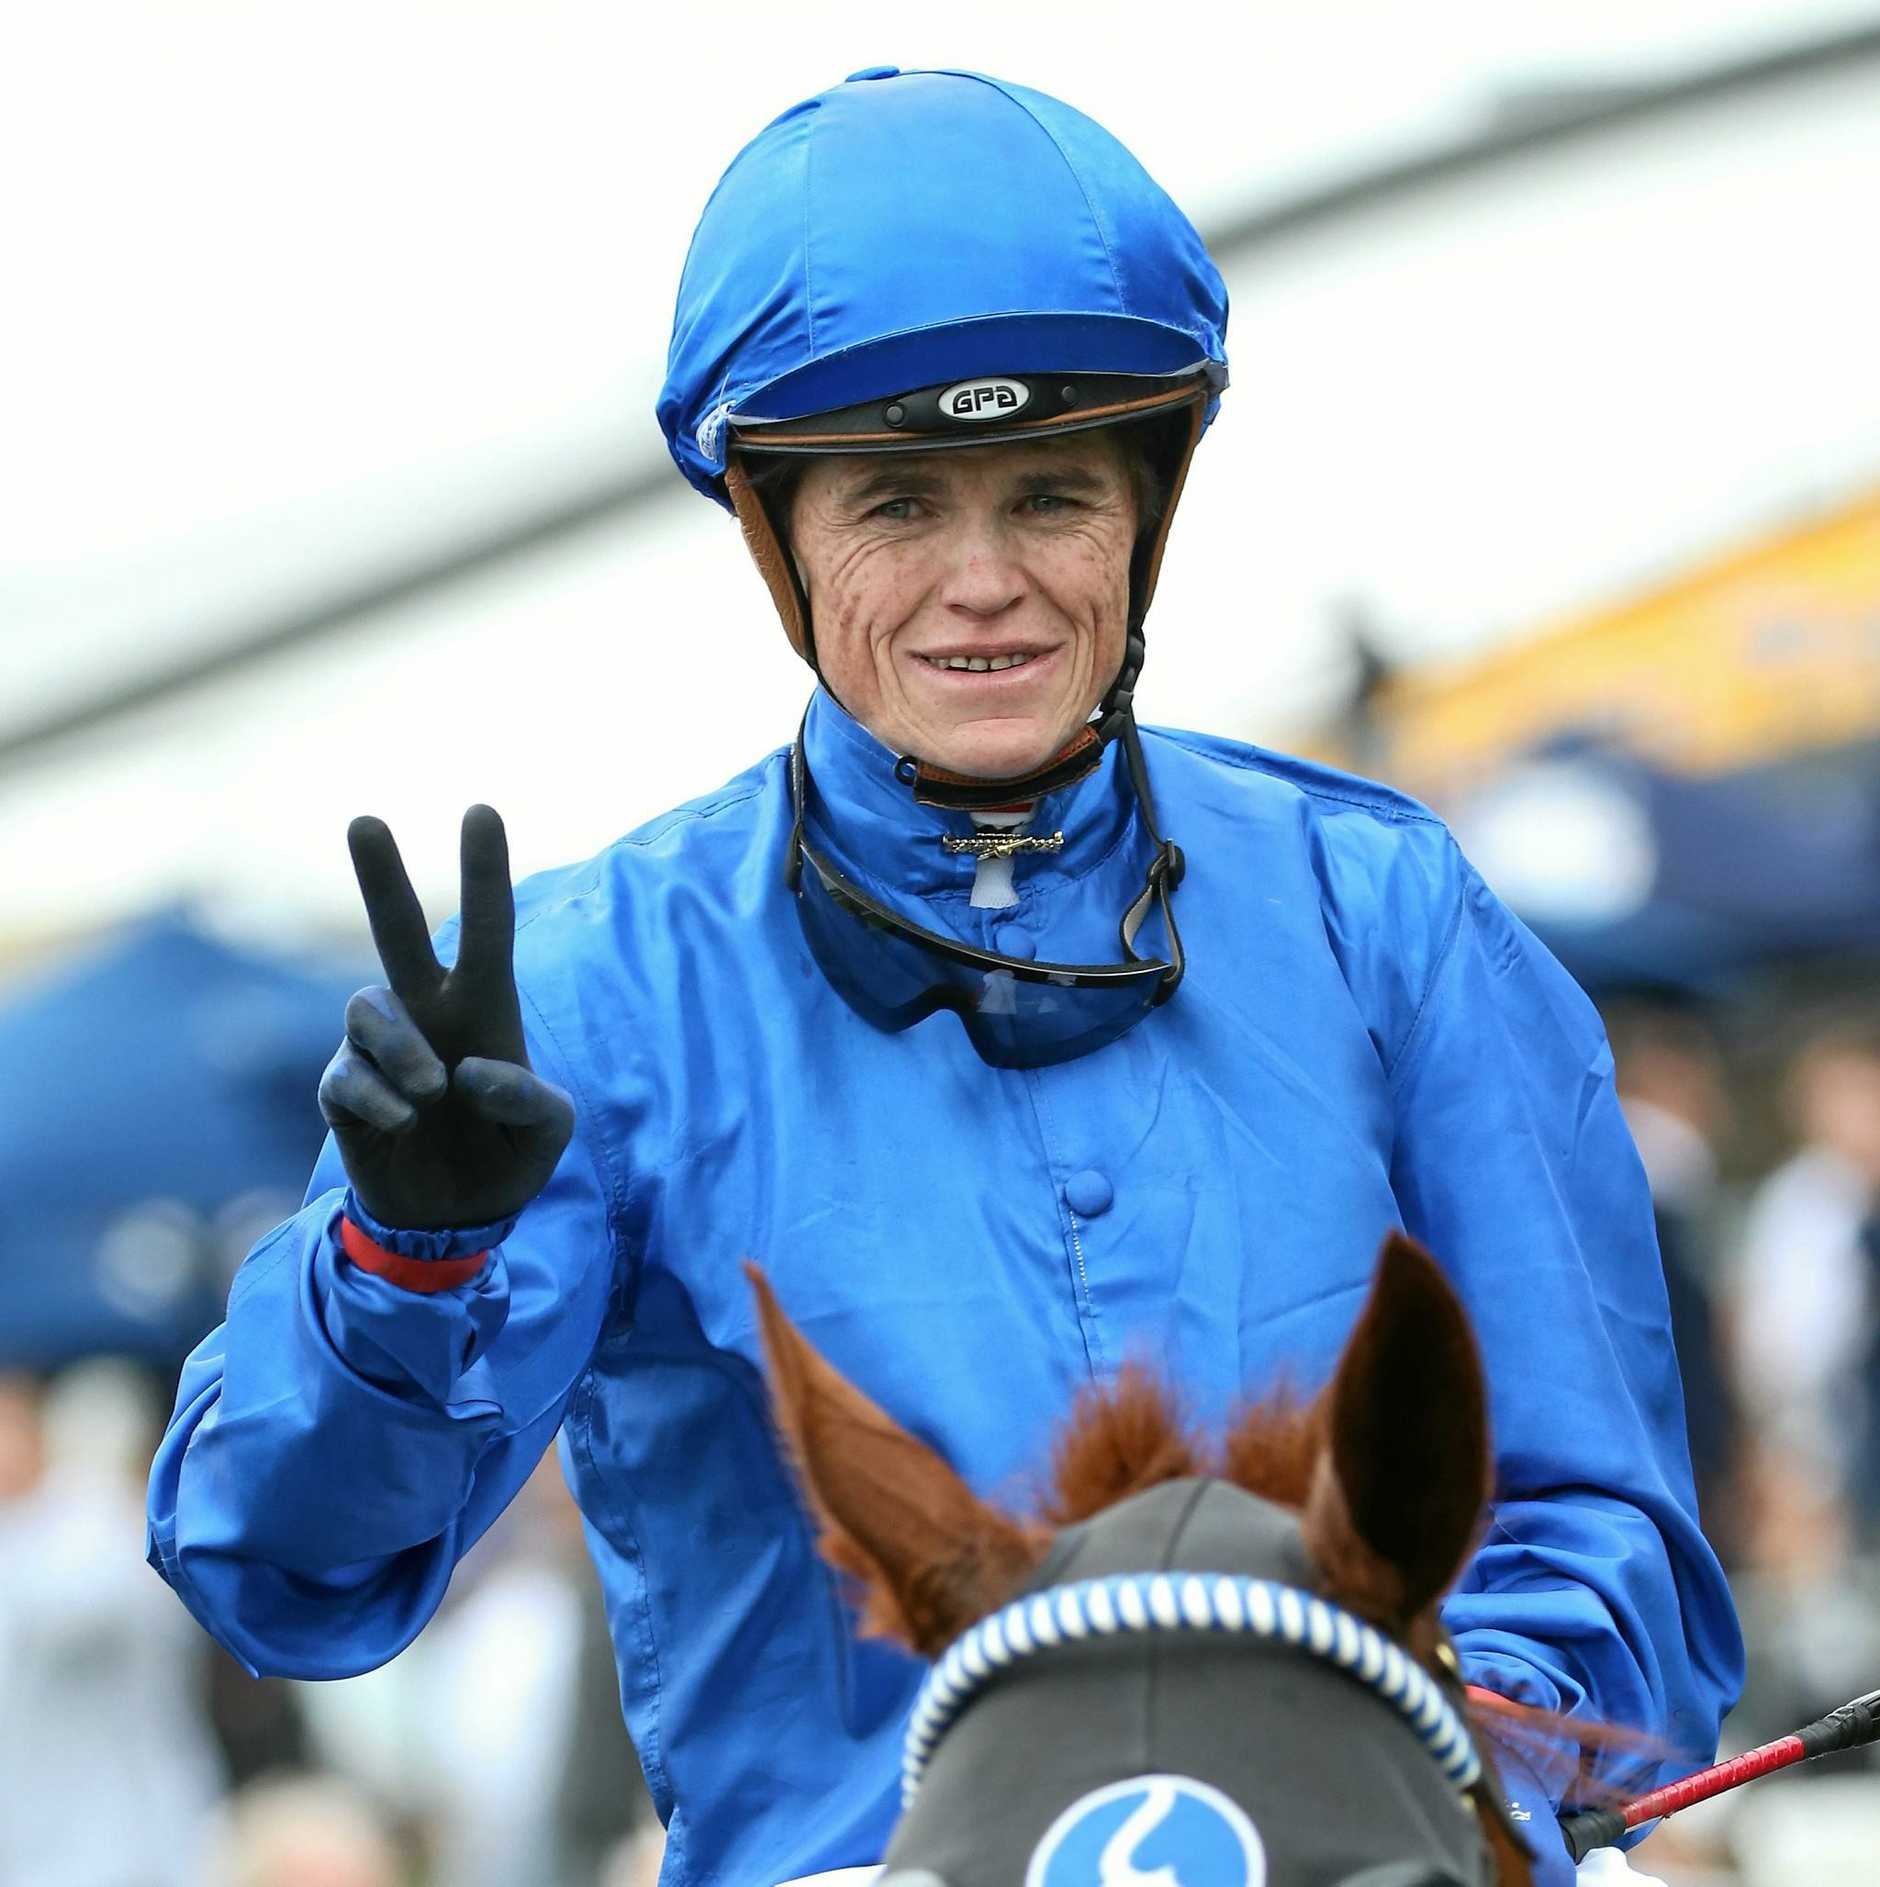 Jockey Craig Williams was kocked out after a fall in the Mornington Cup.